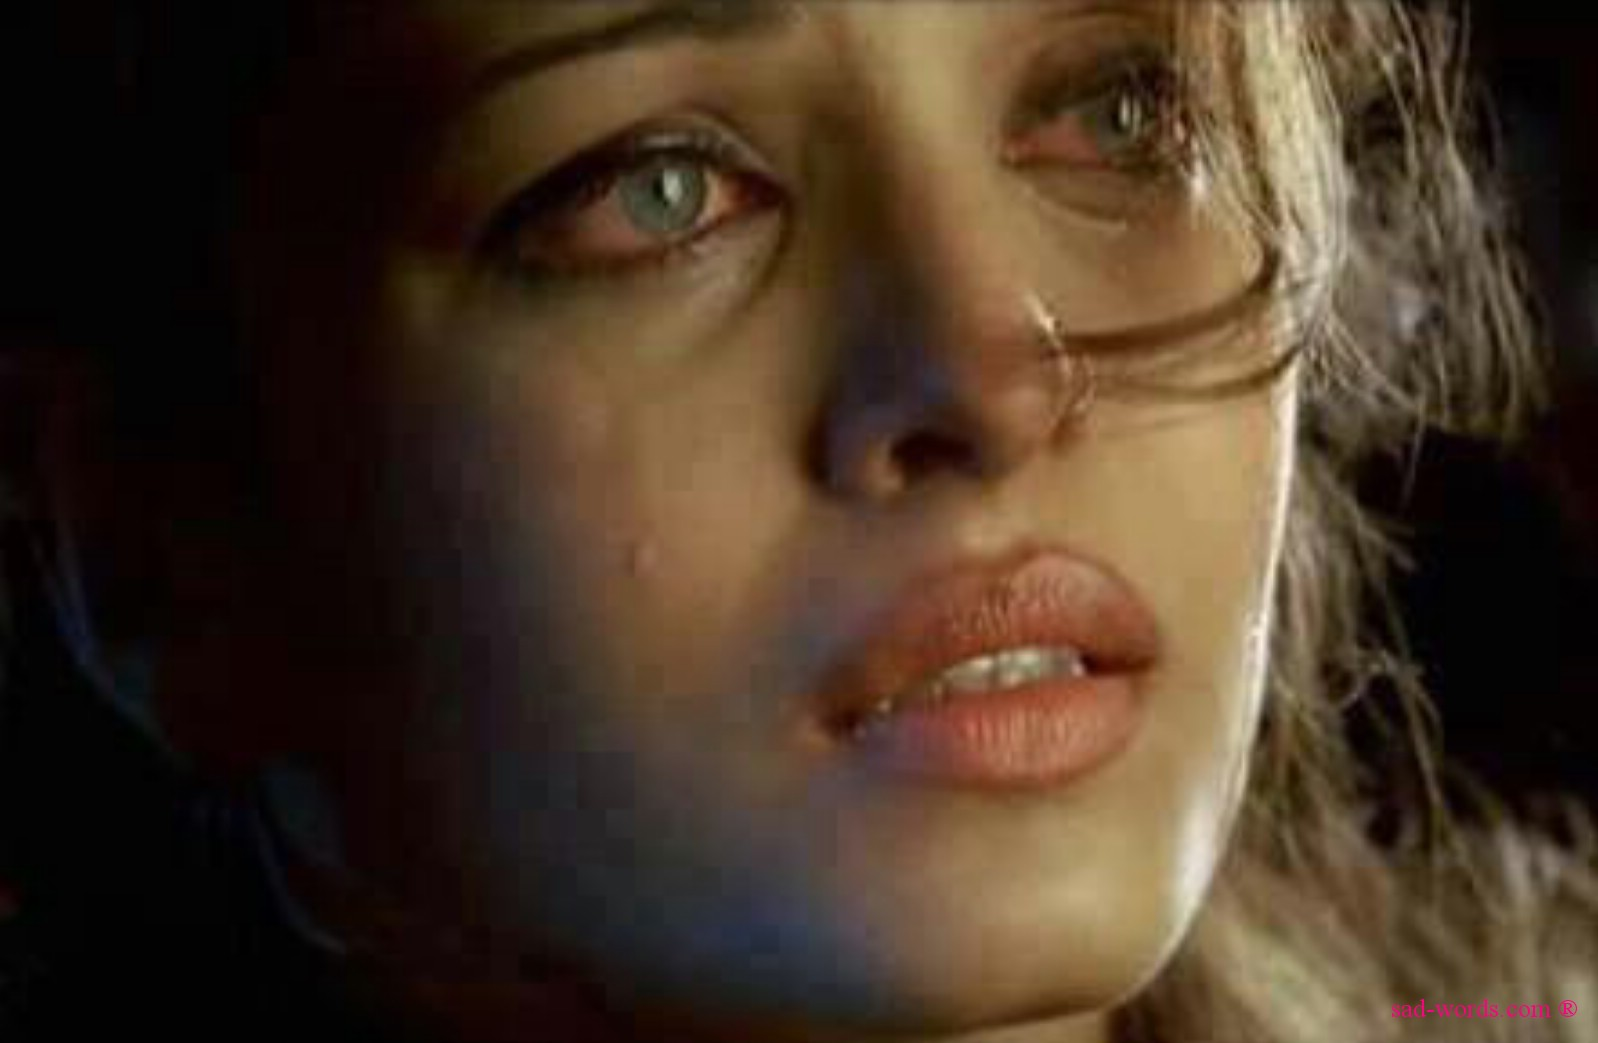 اشعار حزينه قصيره جدا http://www.sad-words.com/2013/04/Photo-tears.html